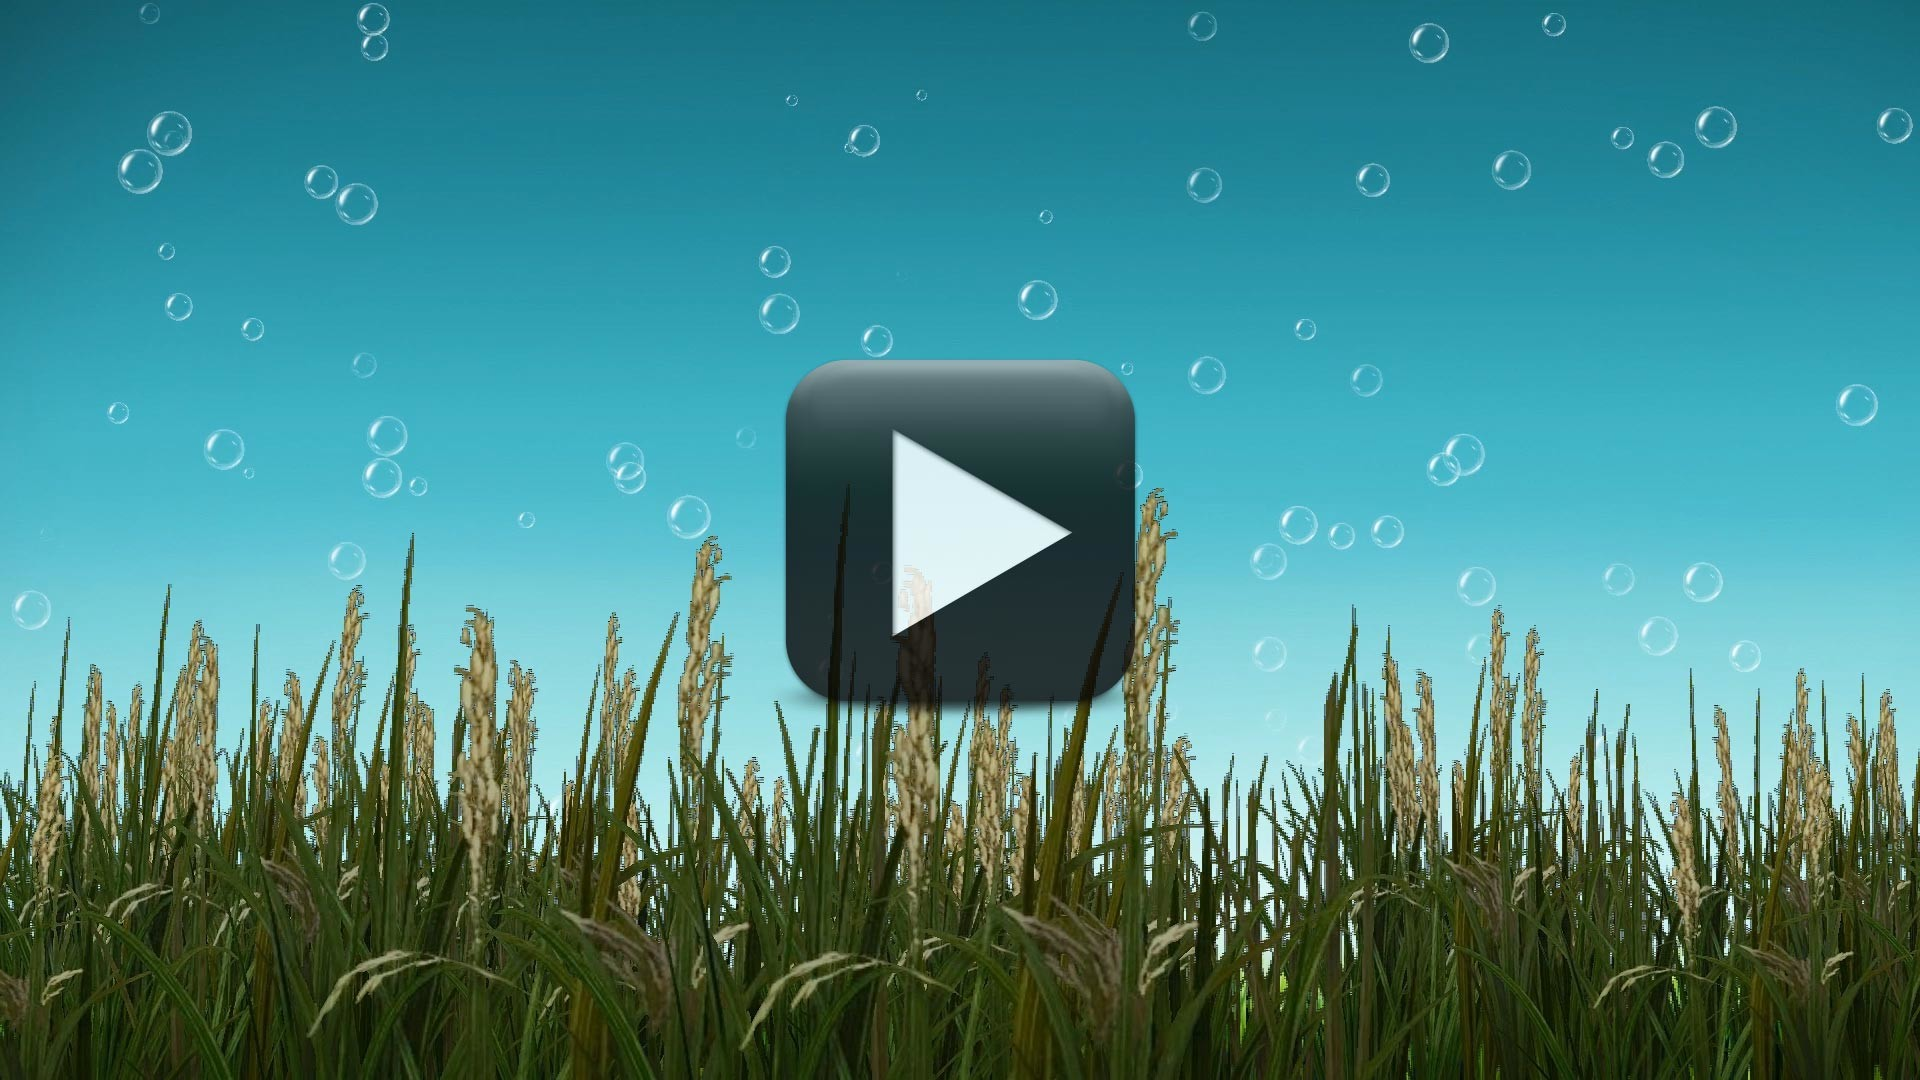 1920x1080 Free Nature BackGround Video with Cool Bubbles Animation | All Design  Creative